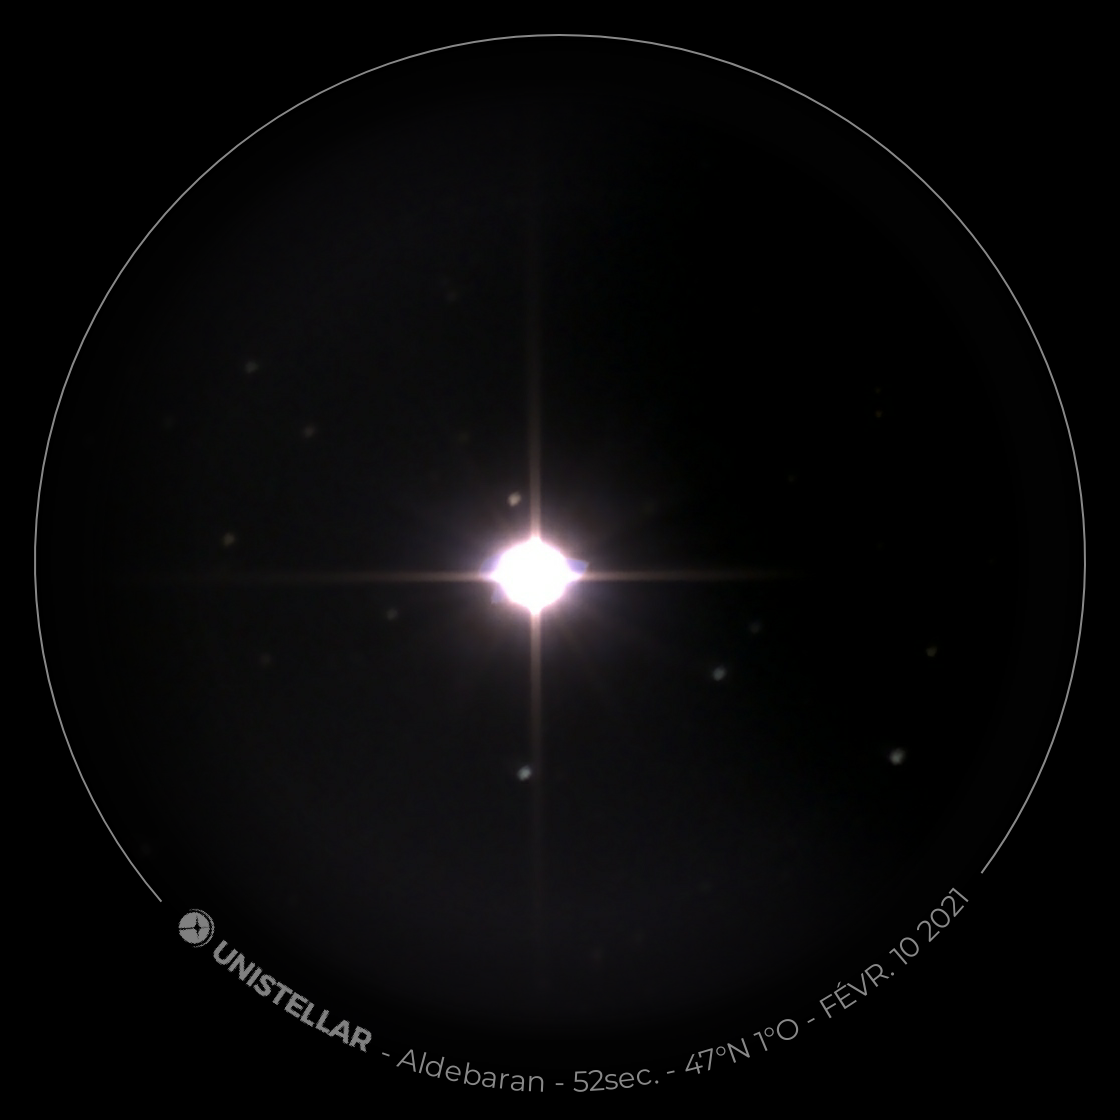 eVscope-20210210-201221.png